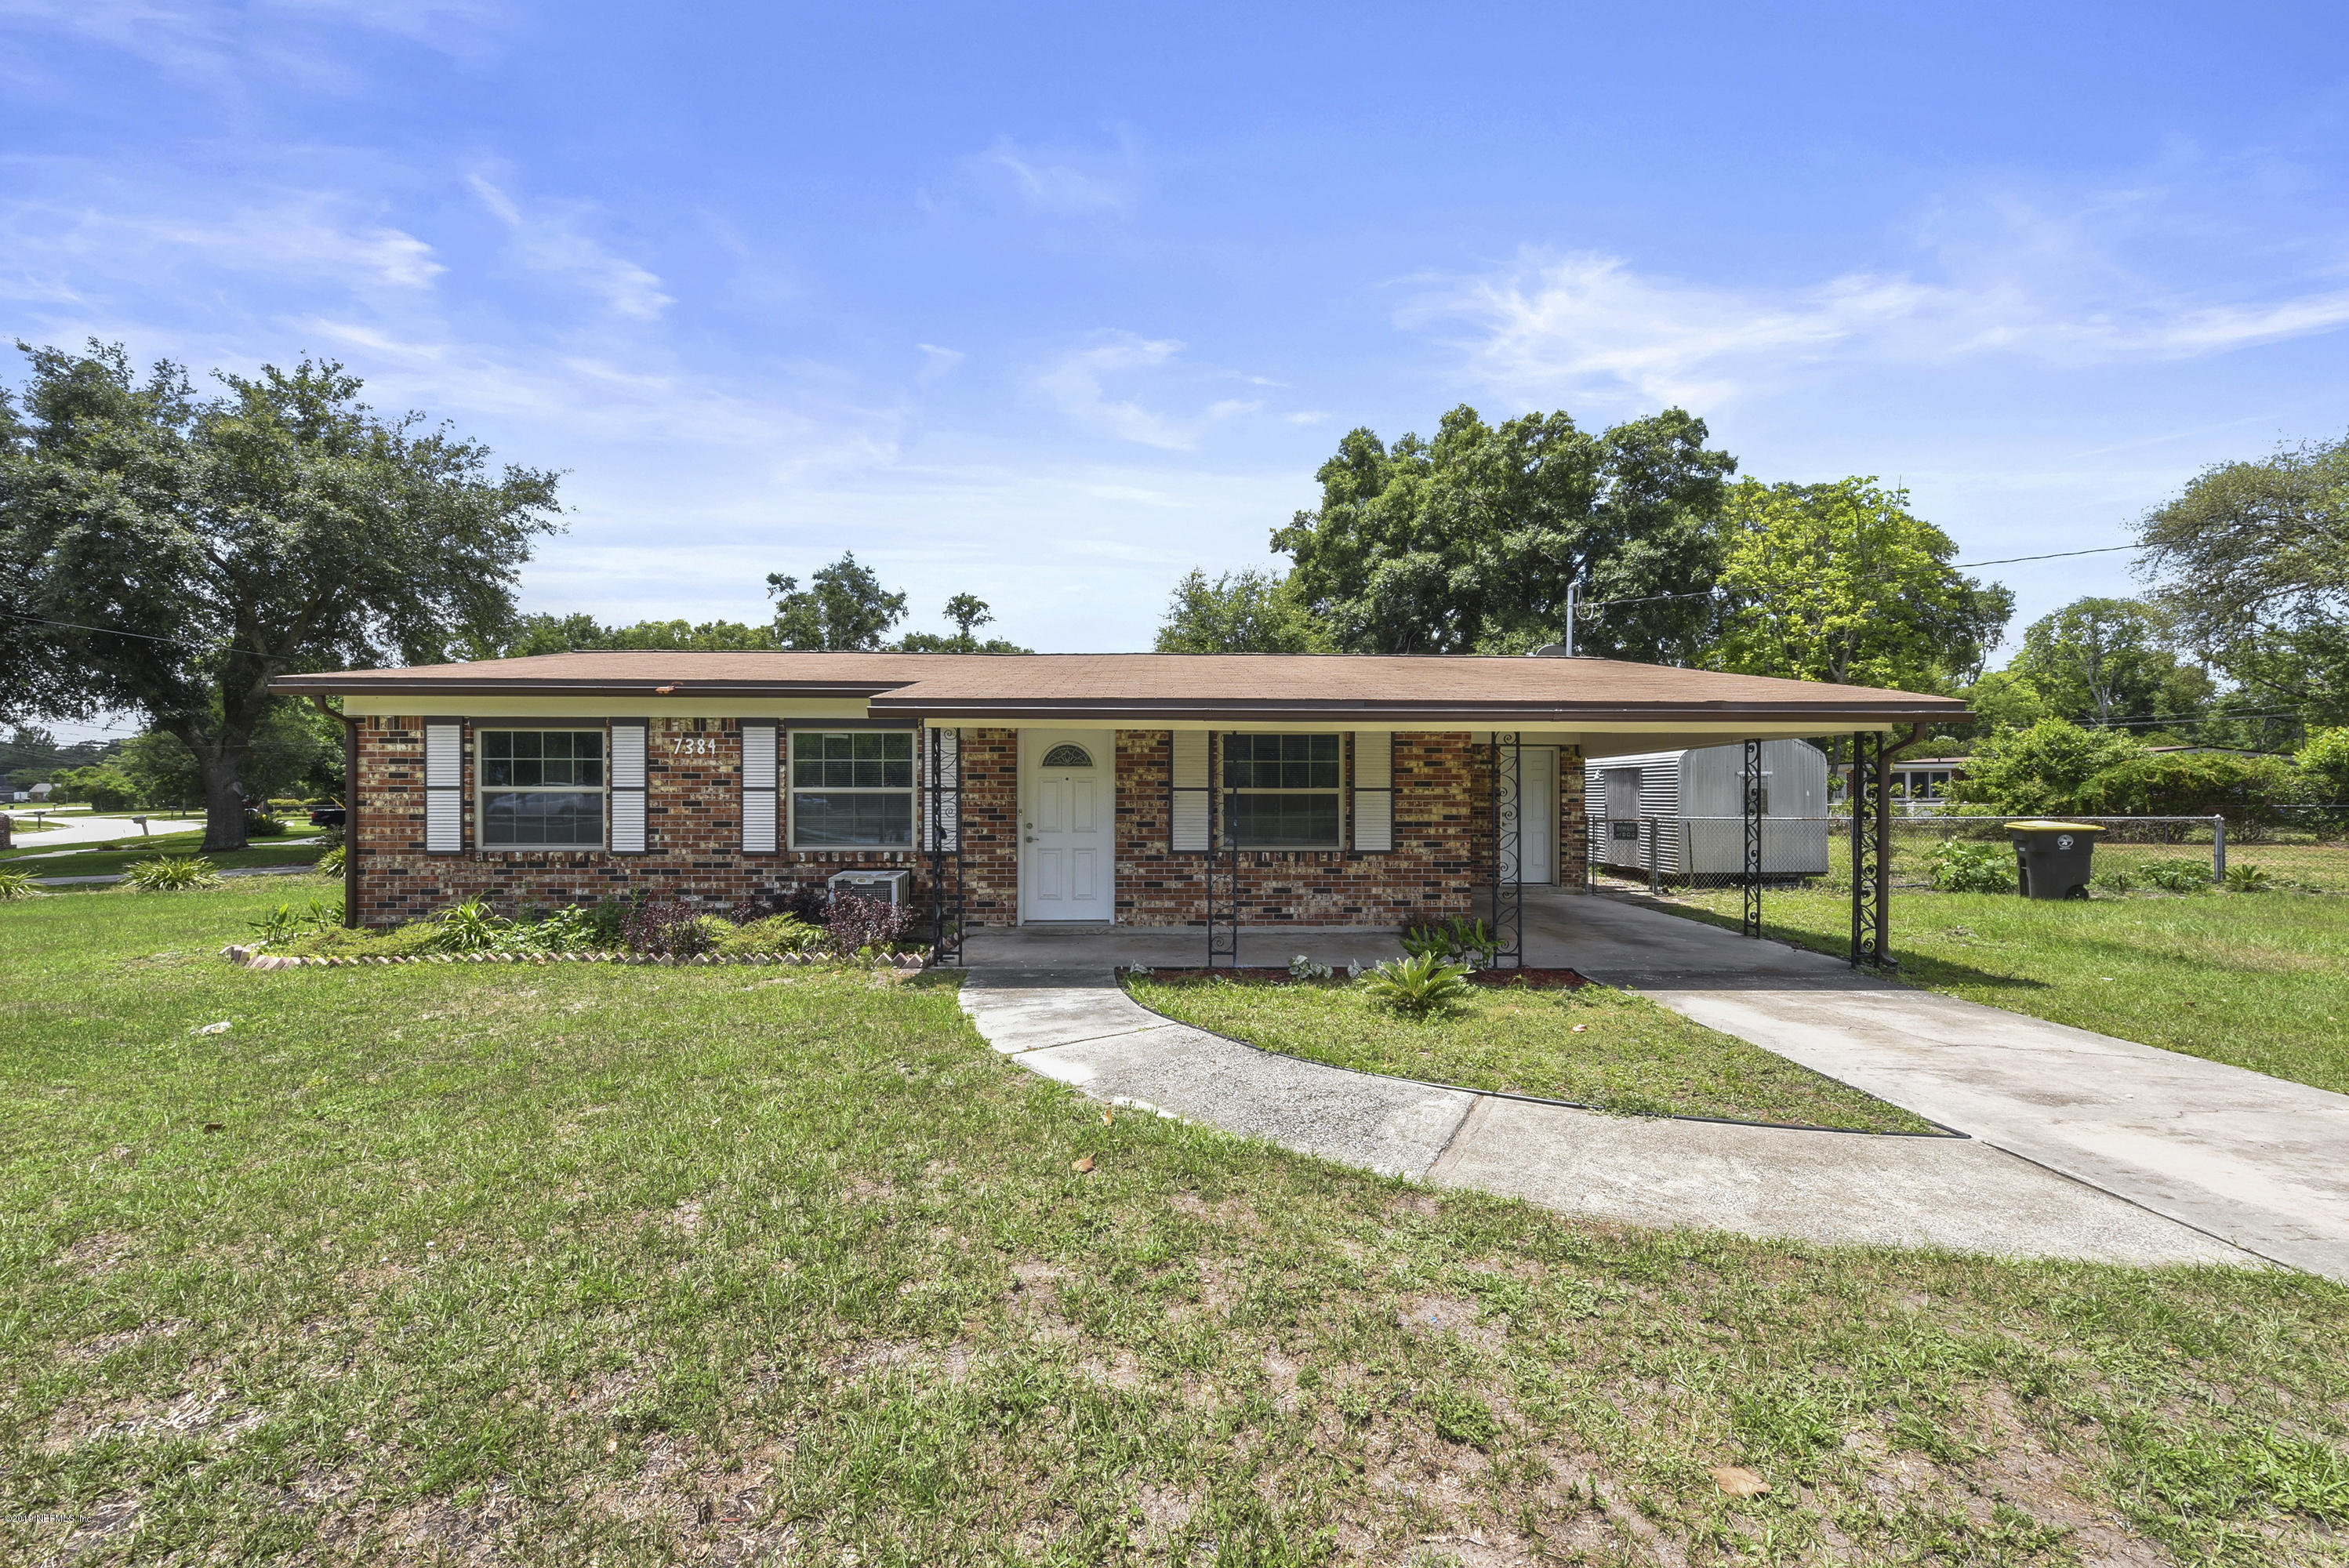 Photo of 7384 RIDGEWAY, JACKSONVILLE, FL 32244